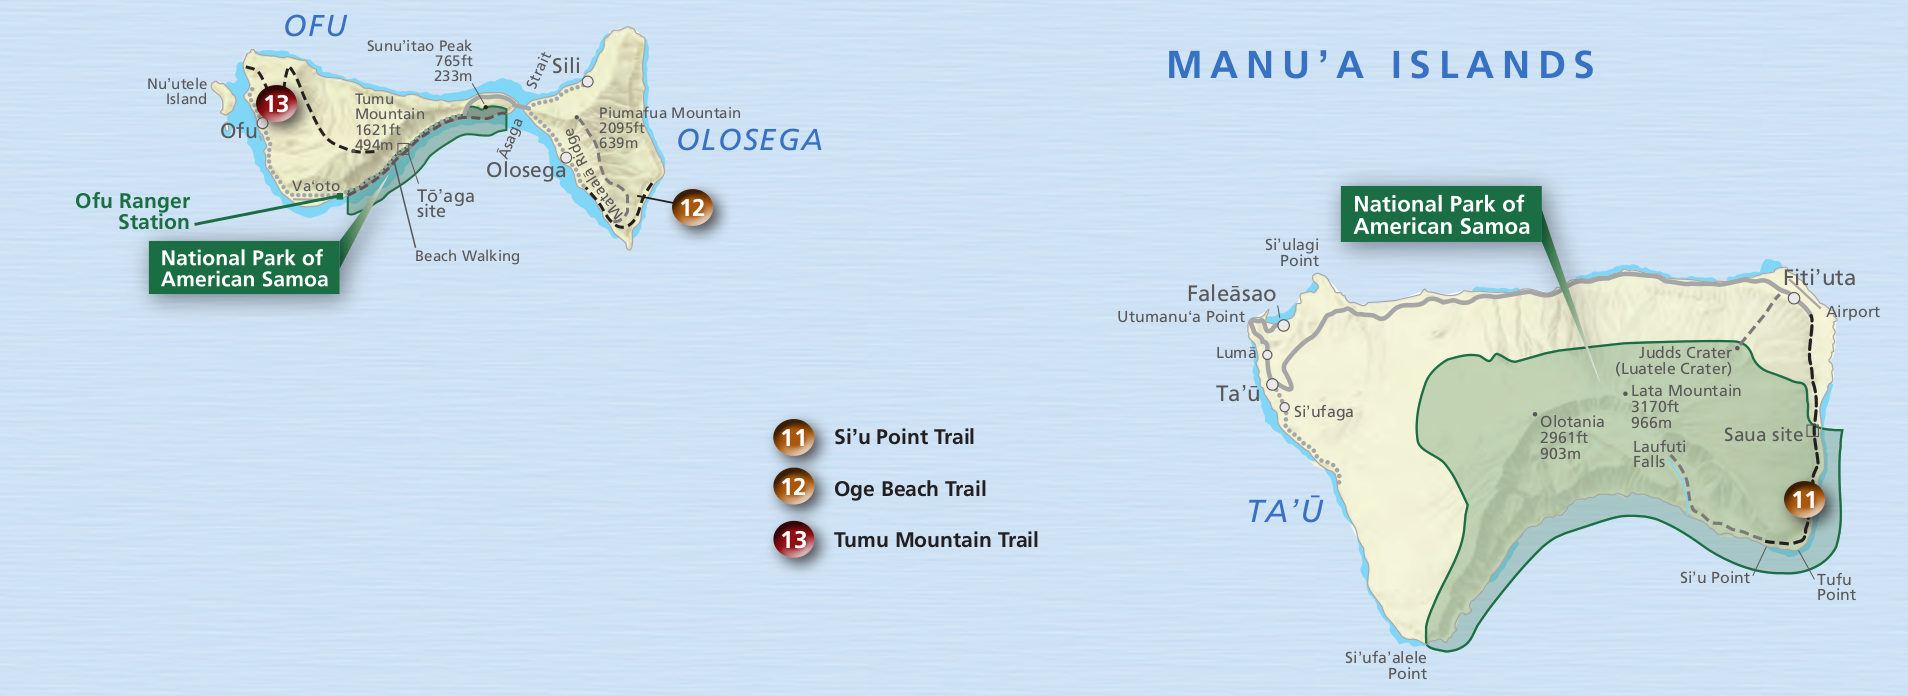 national park of american samoa manua islands map